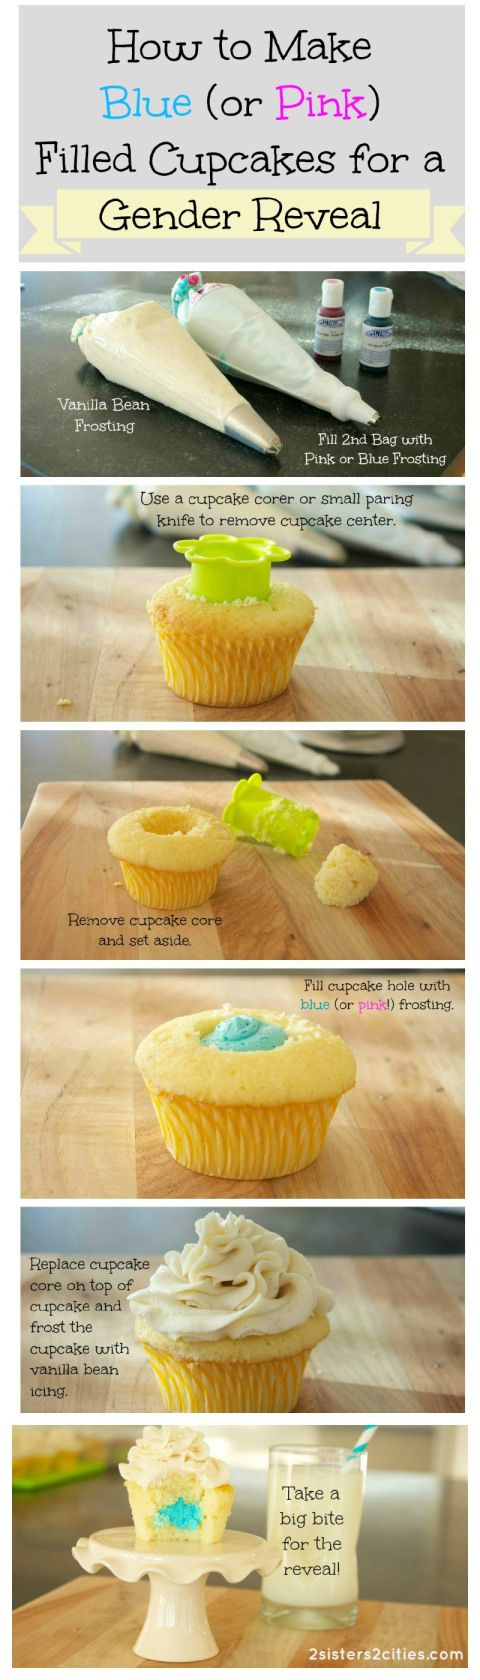 Gender Reveal Cupcakes Tutorial: Make sure everyone takes the first bite at the same time for the surprise reveal!